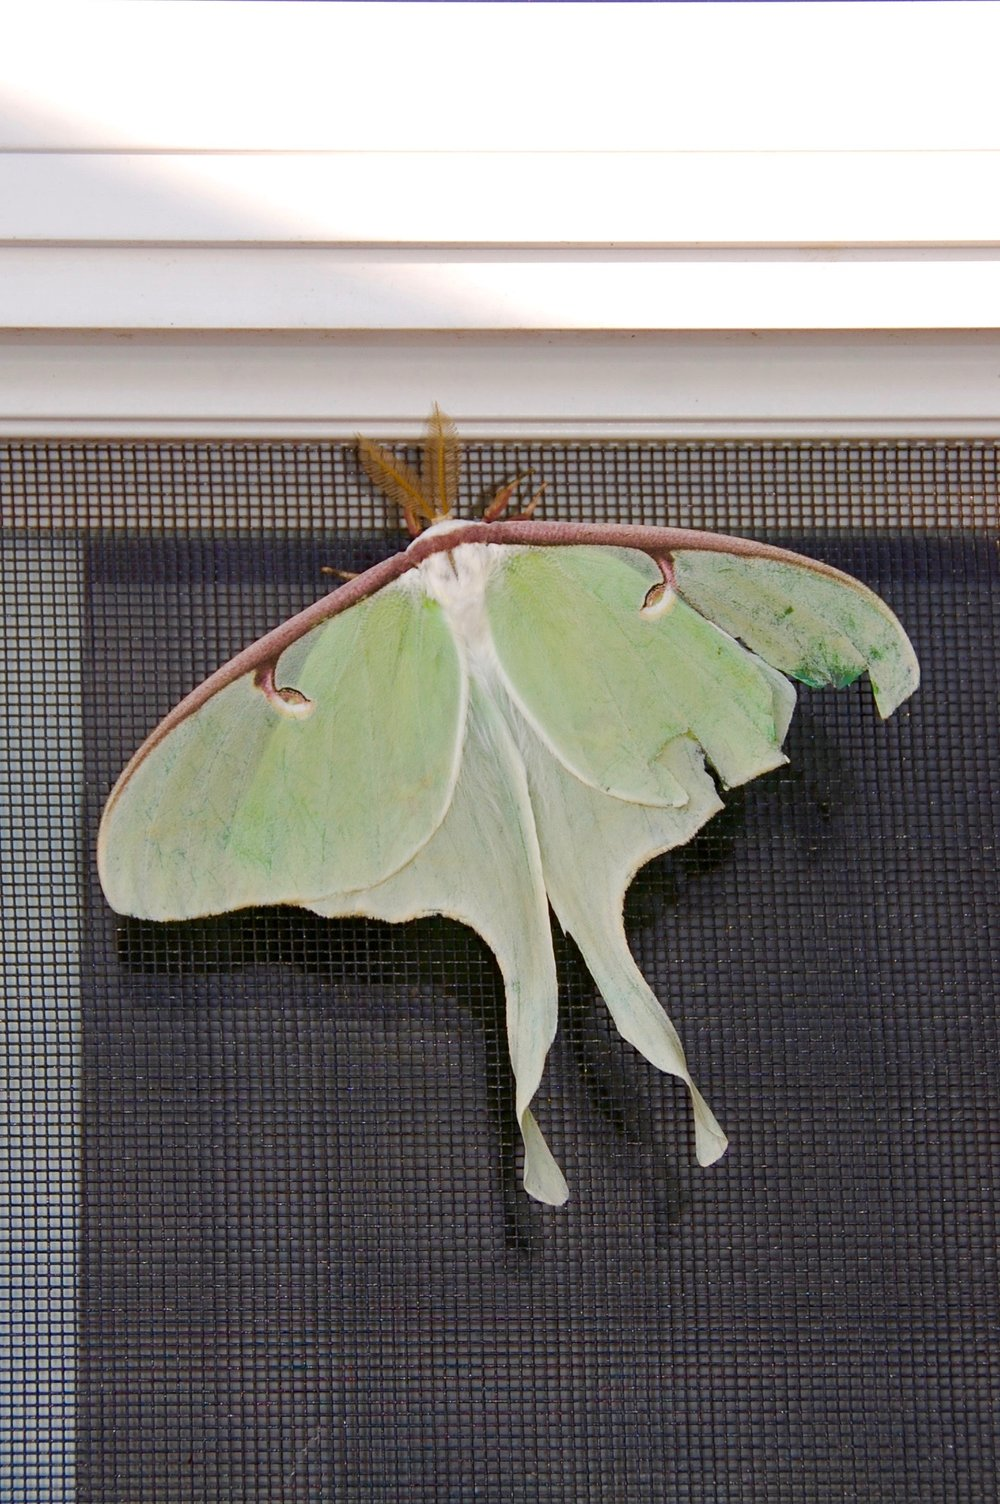 luna moth big green moth